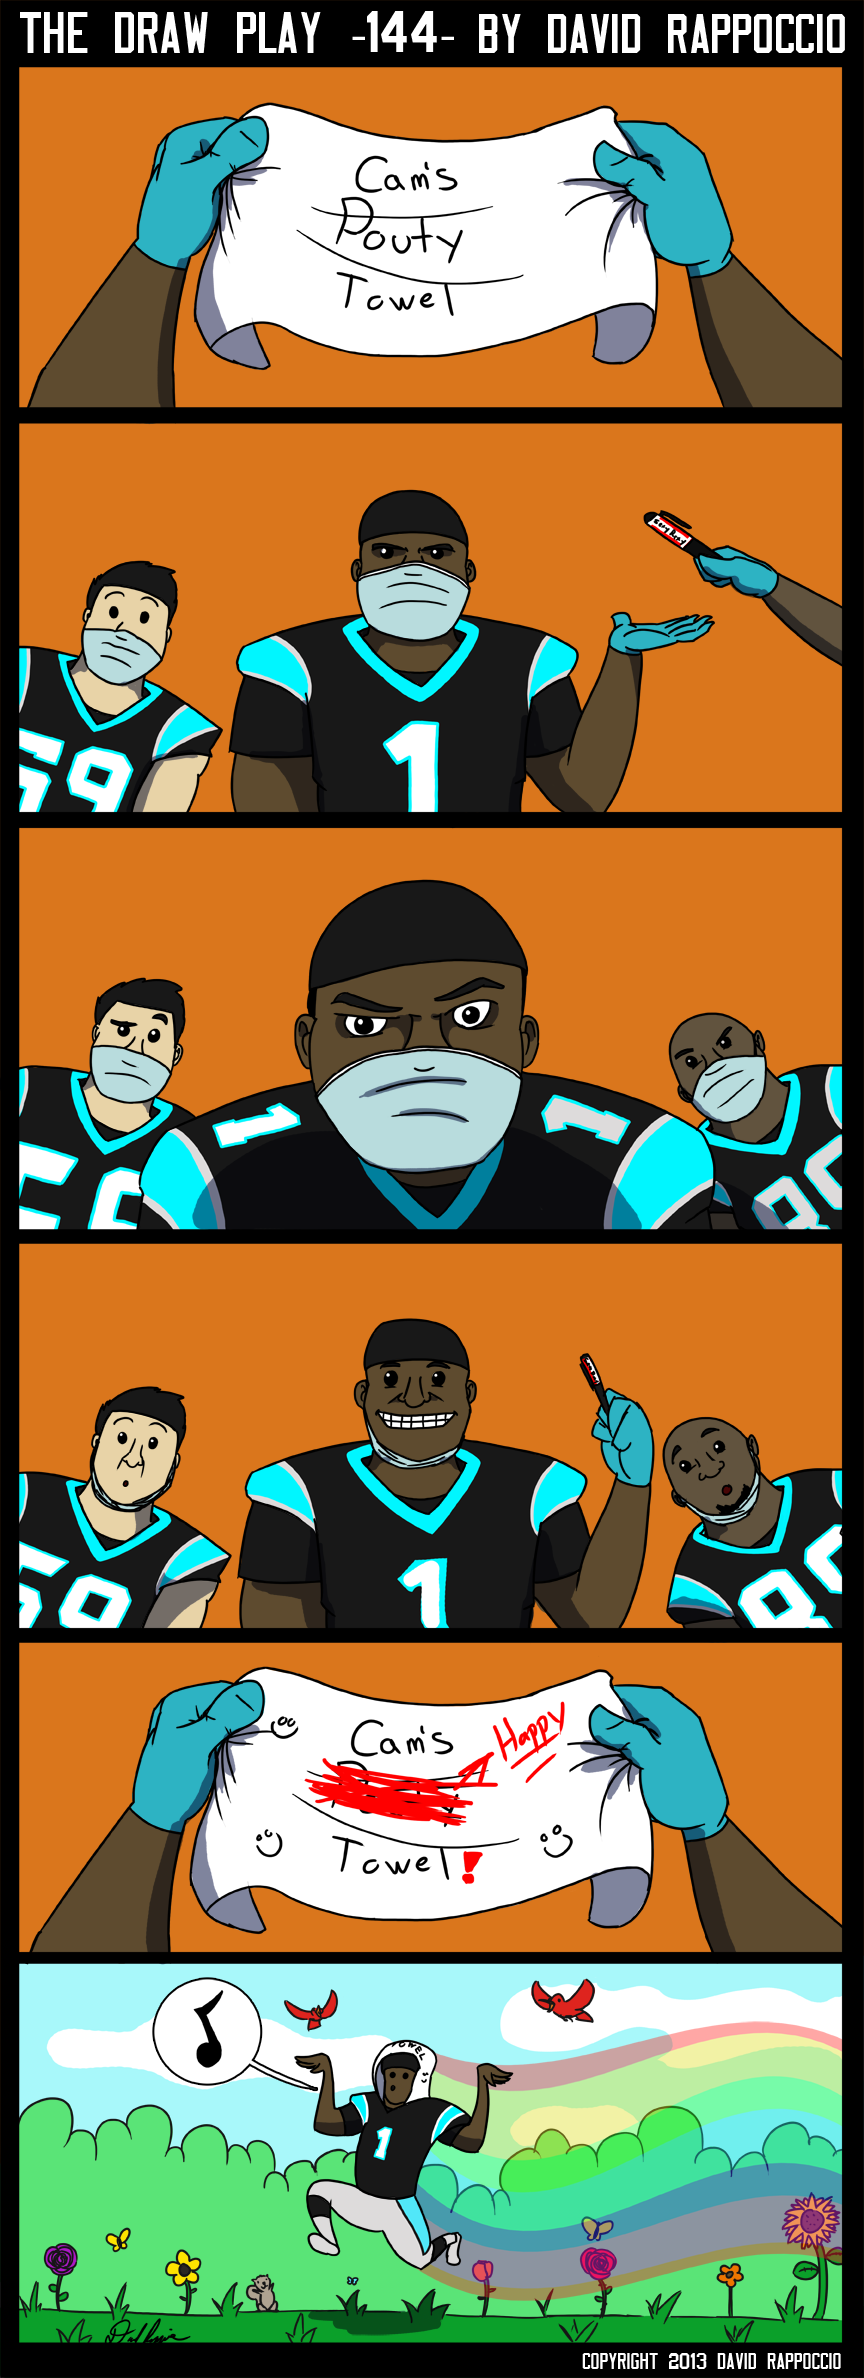 Steve Smith doesn't have a happy towel, he just has a happy fist